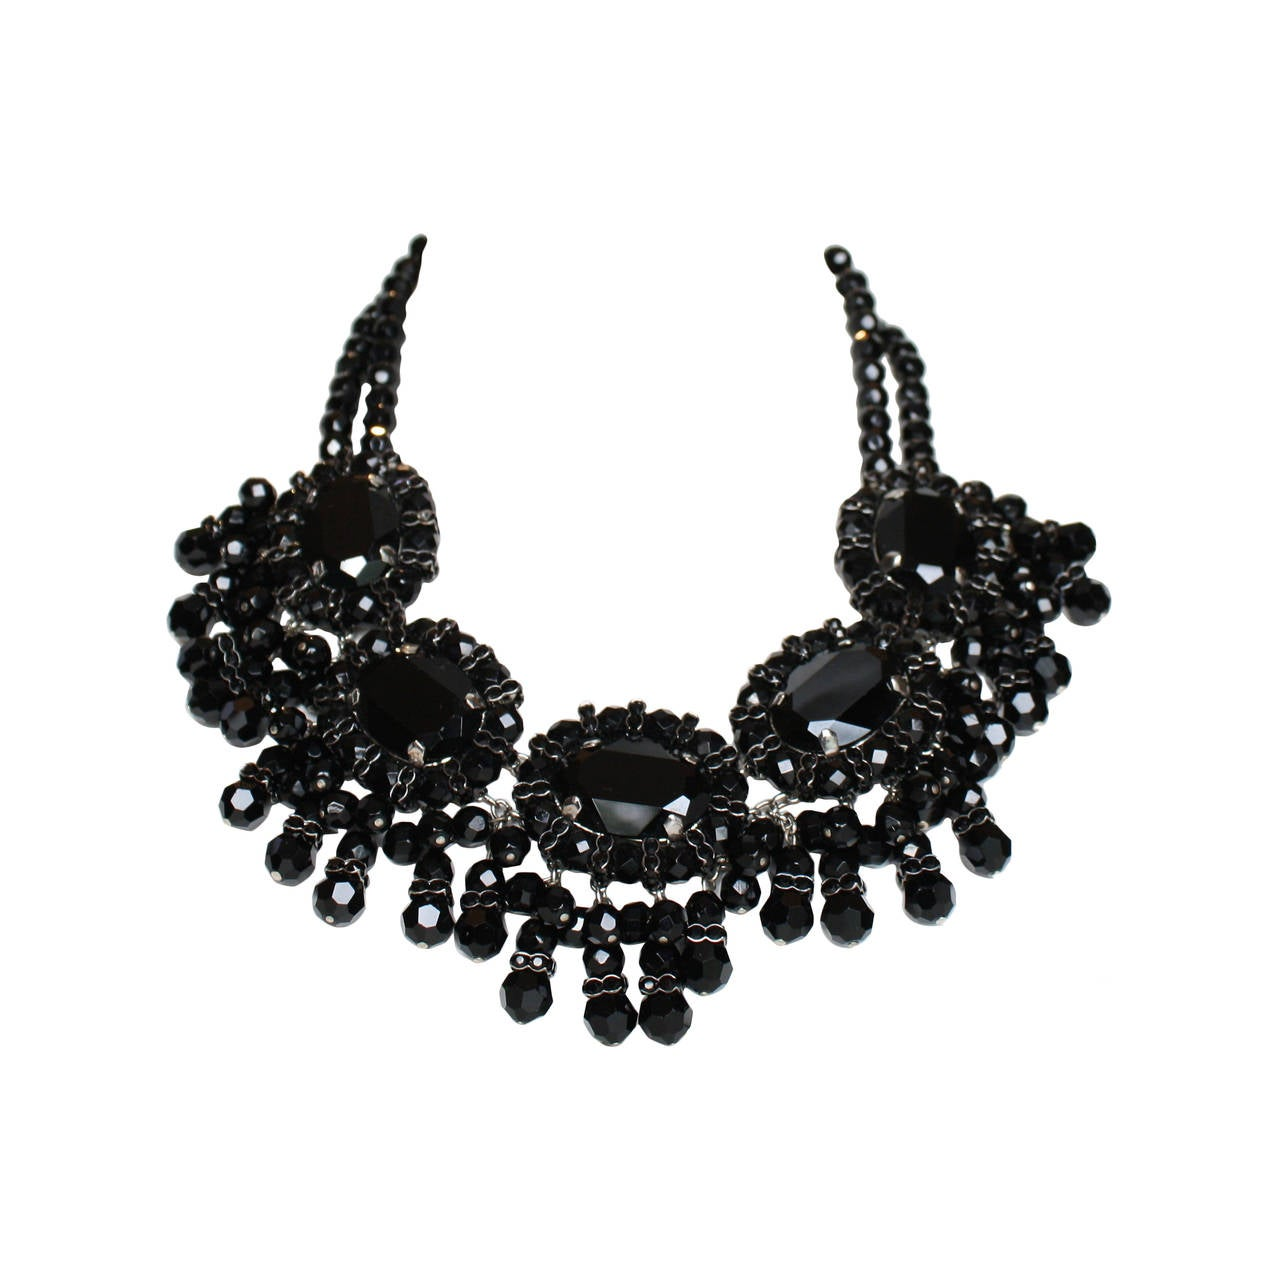 Francoise Montague Black Glass and Swarovski Crystal Fringe Choker Necklace For Sale